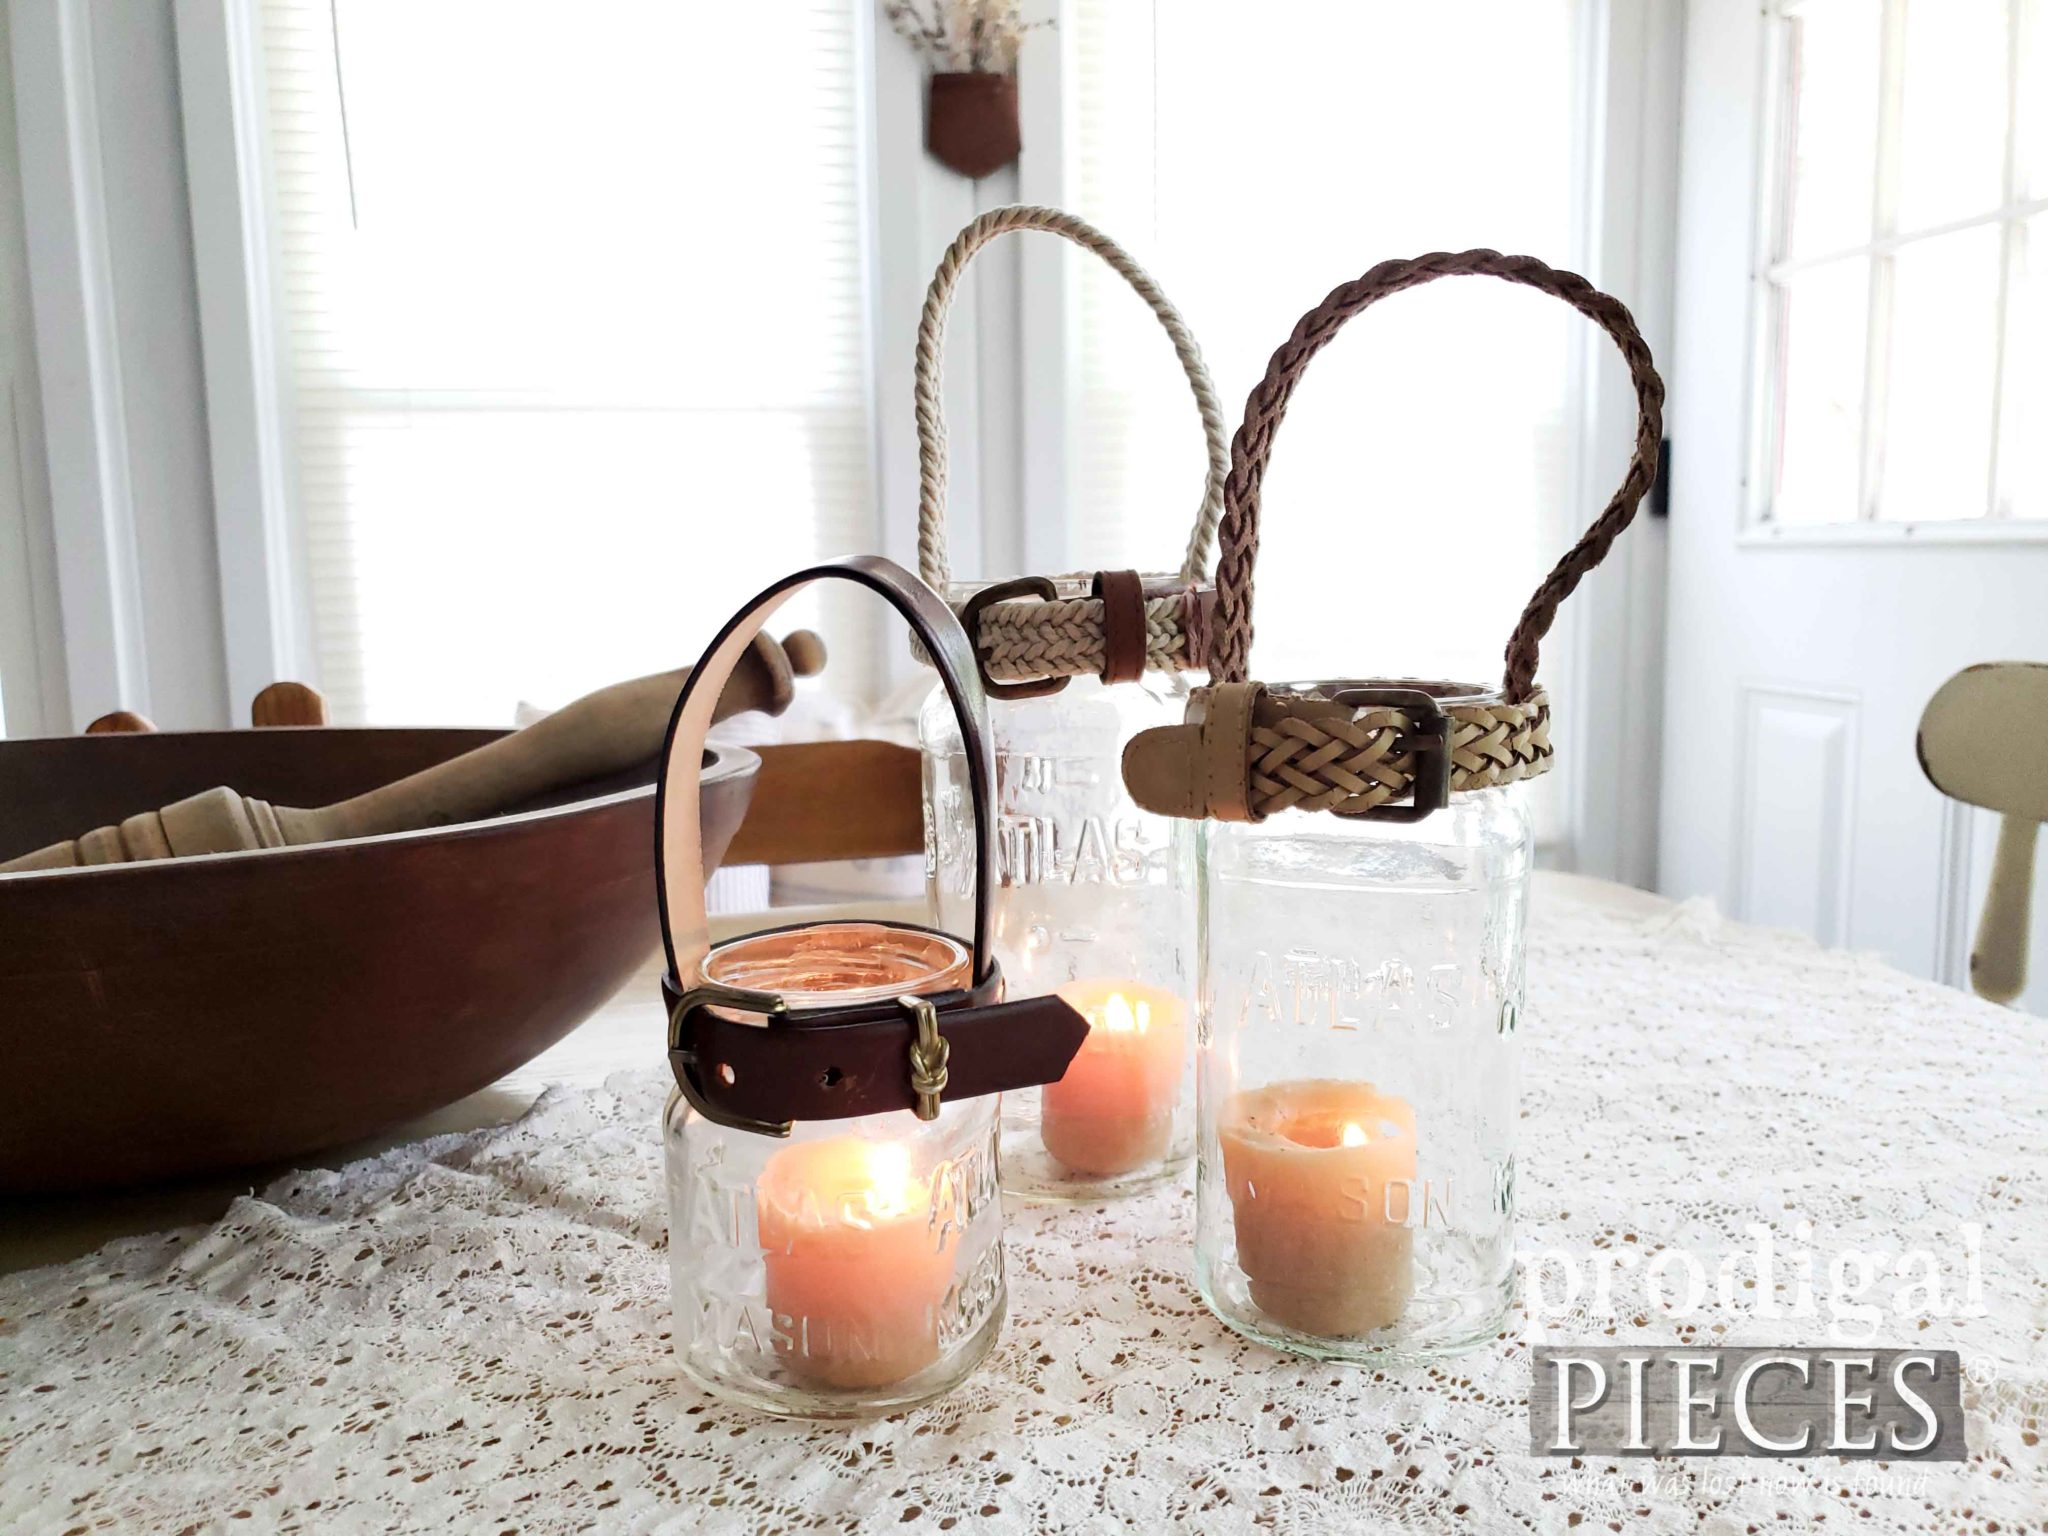 Upcycled Farmhouse Canning Jar Candle Holders with Upcycled Belts by Larissa of Prodigal Pieces | prodigalpieces.com #prodigalpieces #diy #farmhouse #homedecor #home